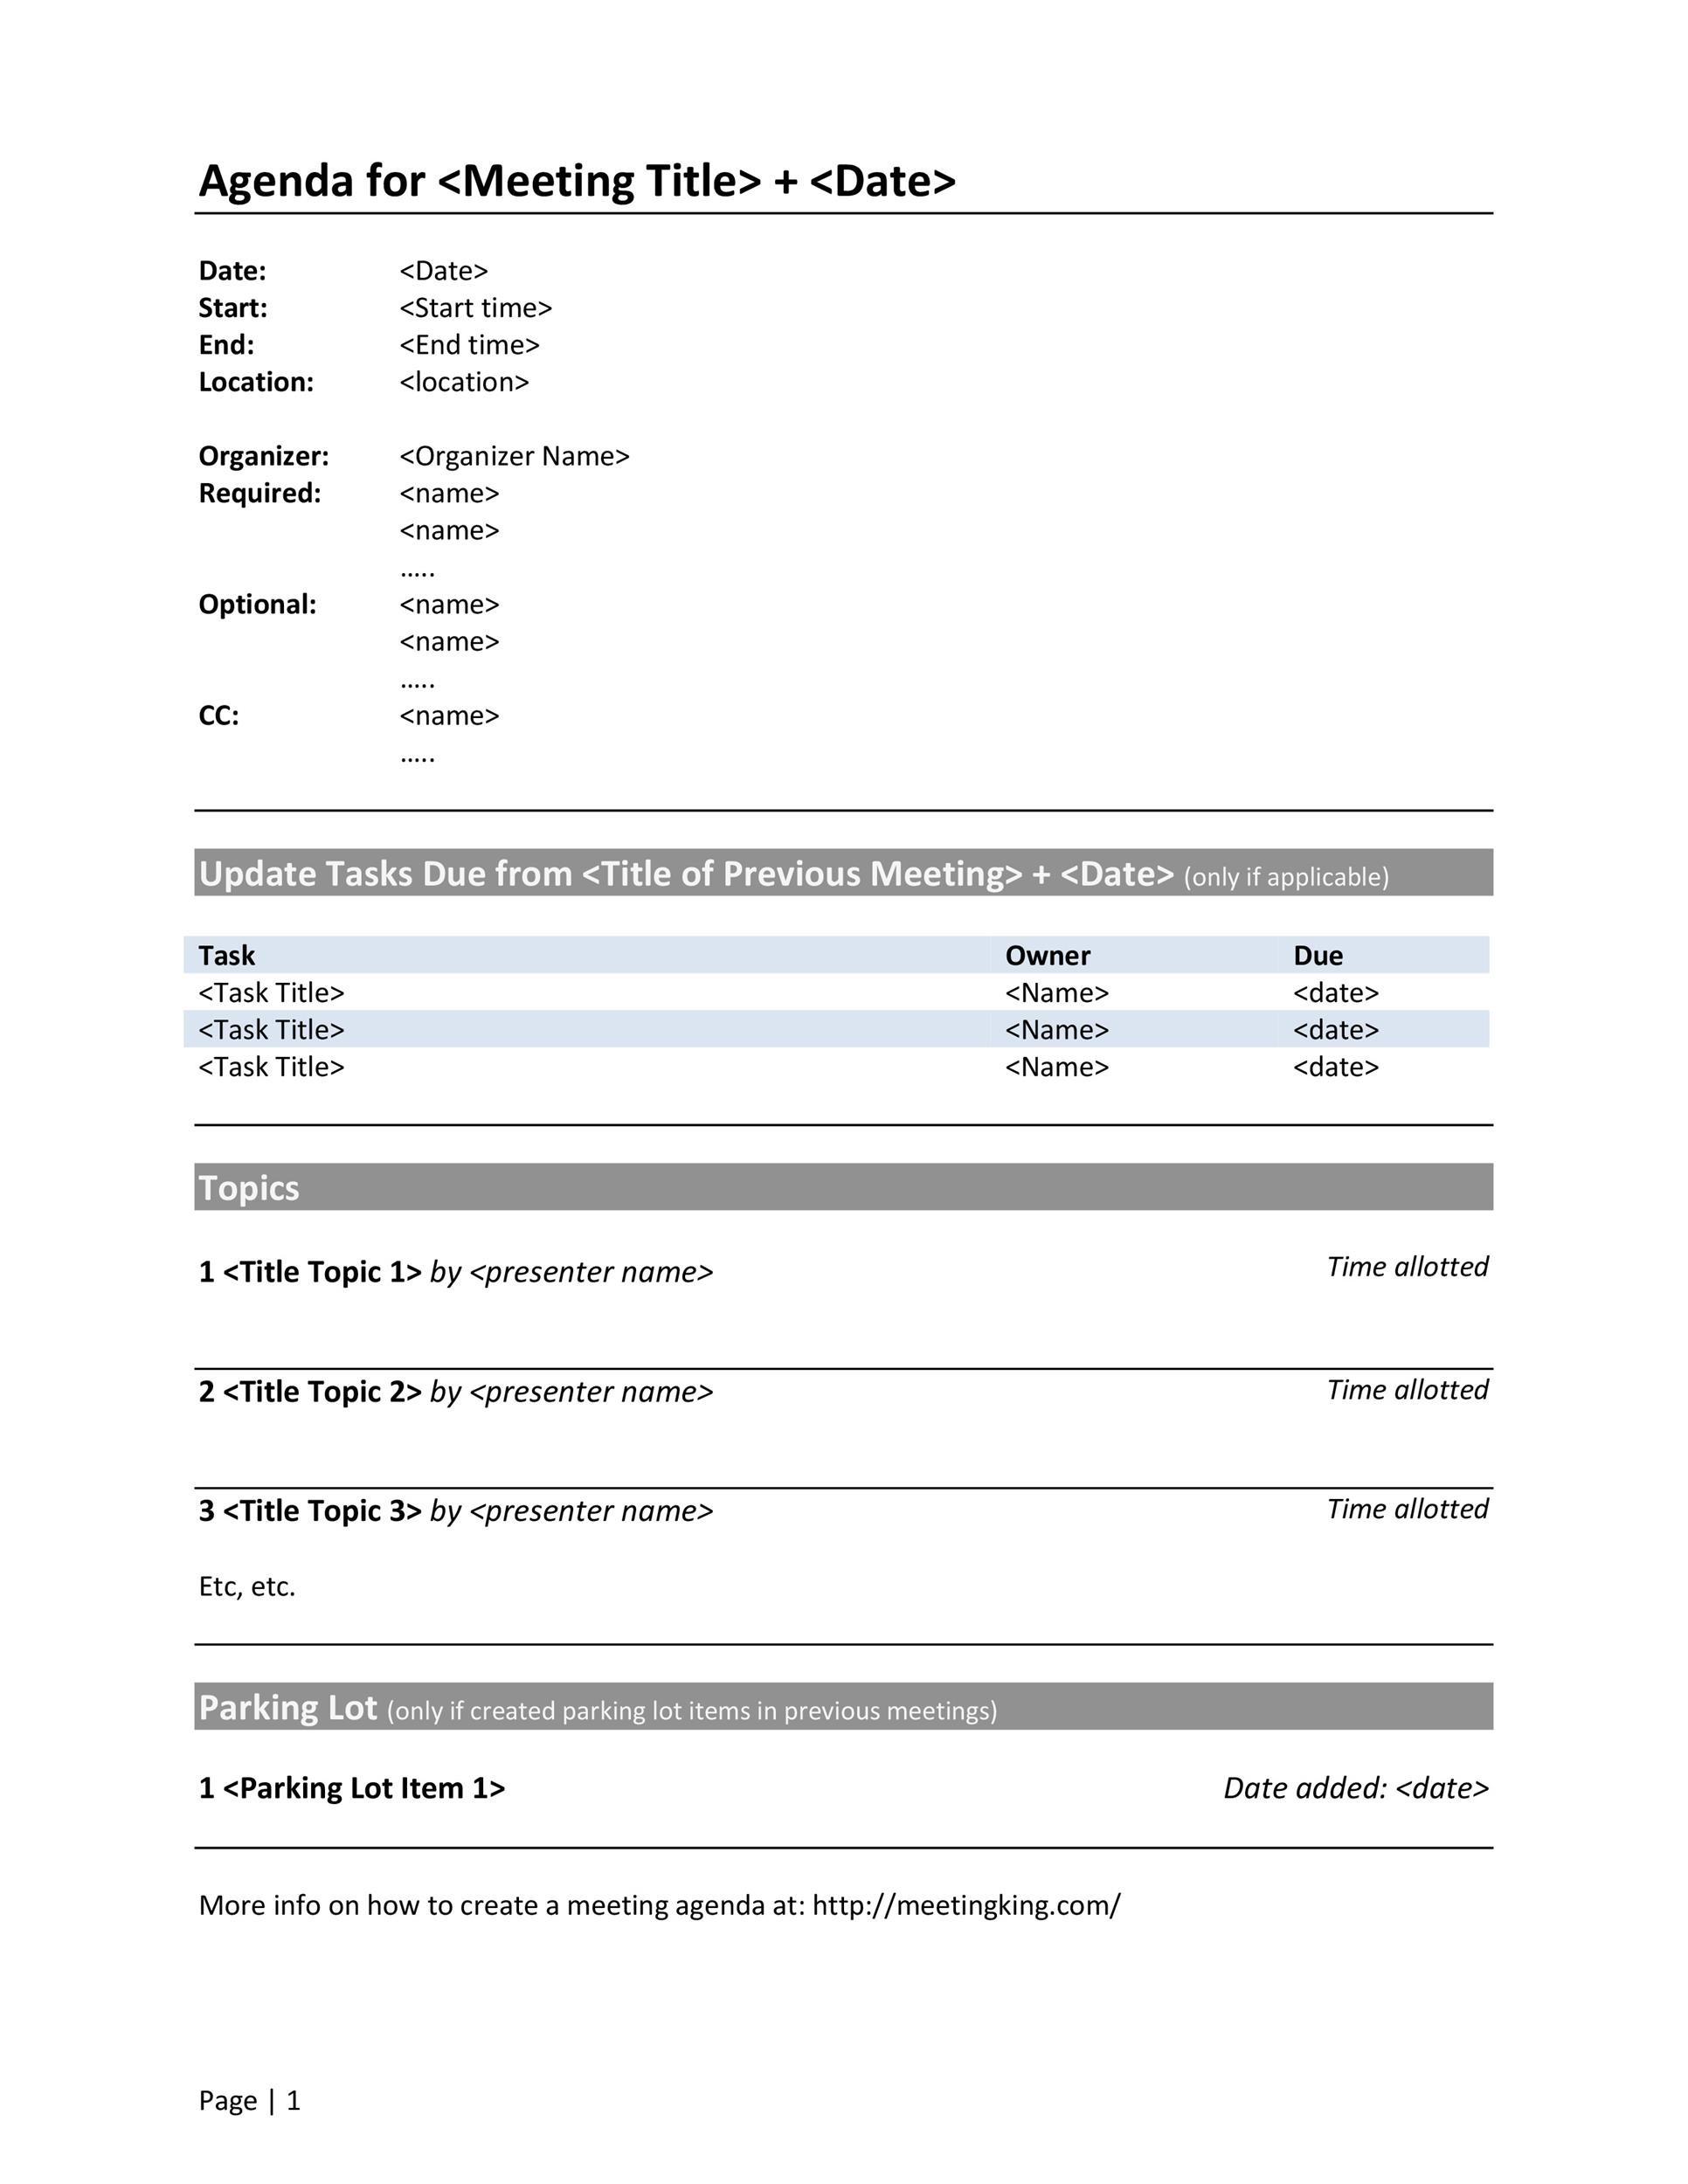 46 Effective Meeting Agenda Templates Template Lab – Meeting Agenda